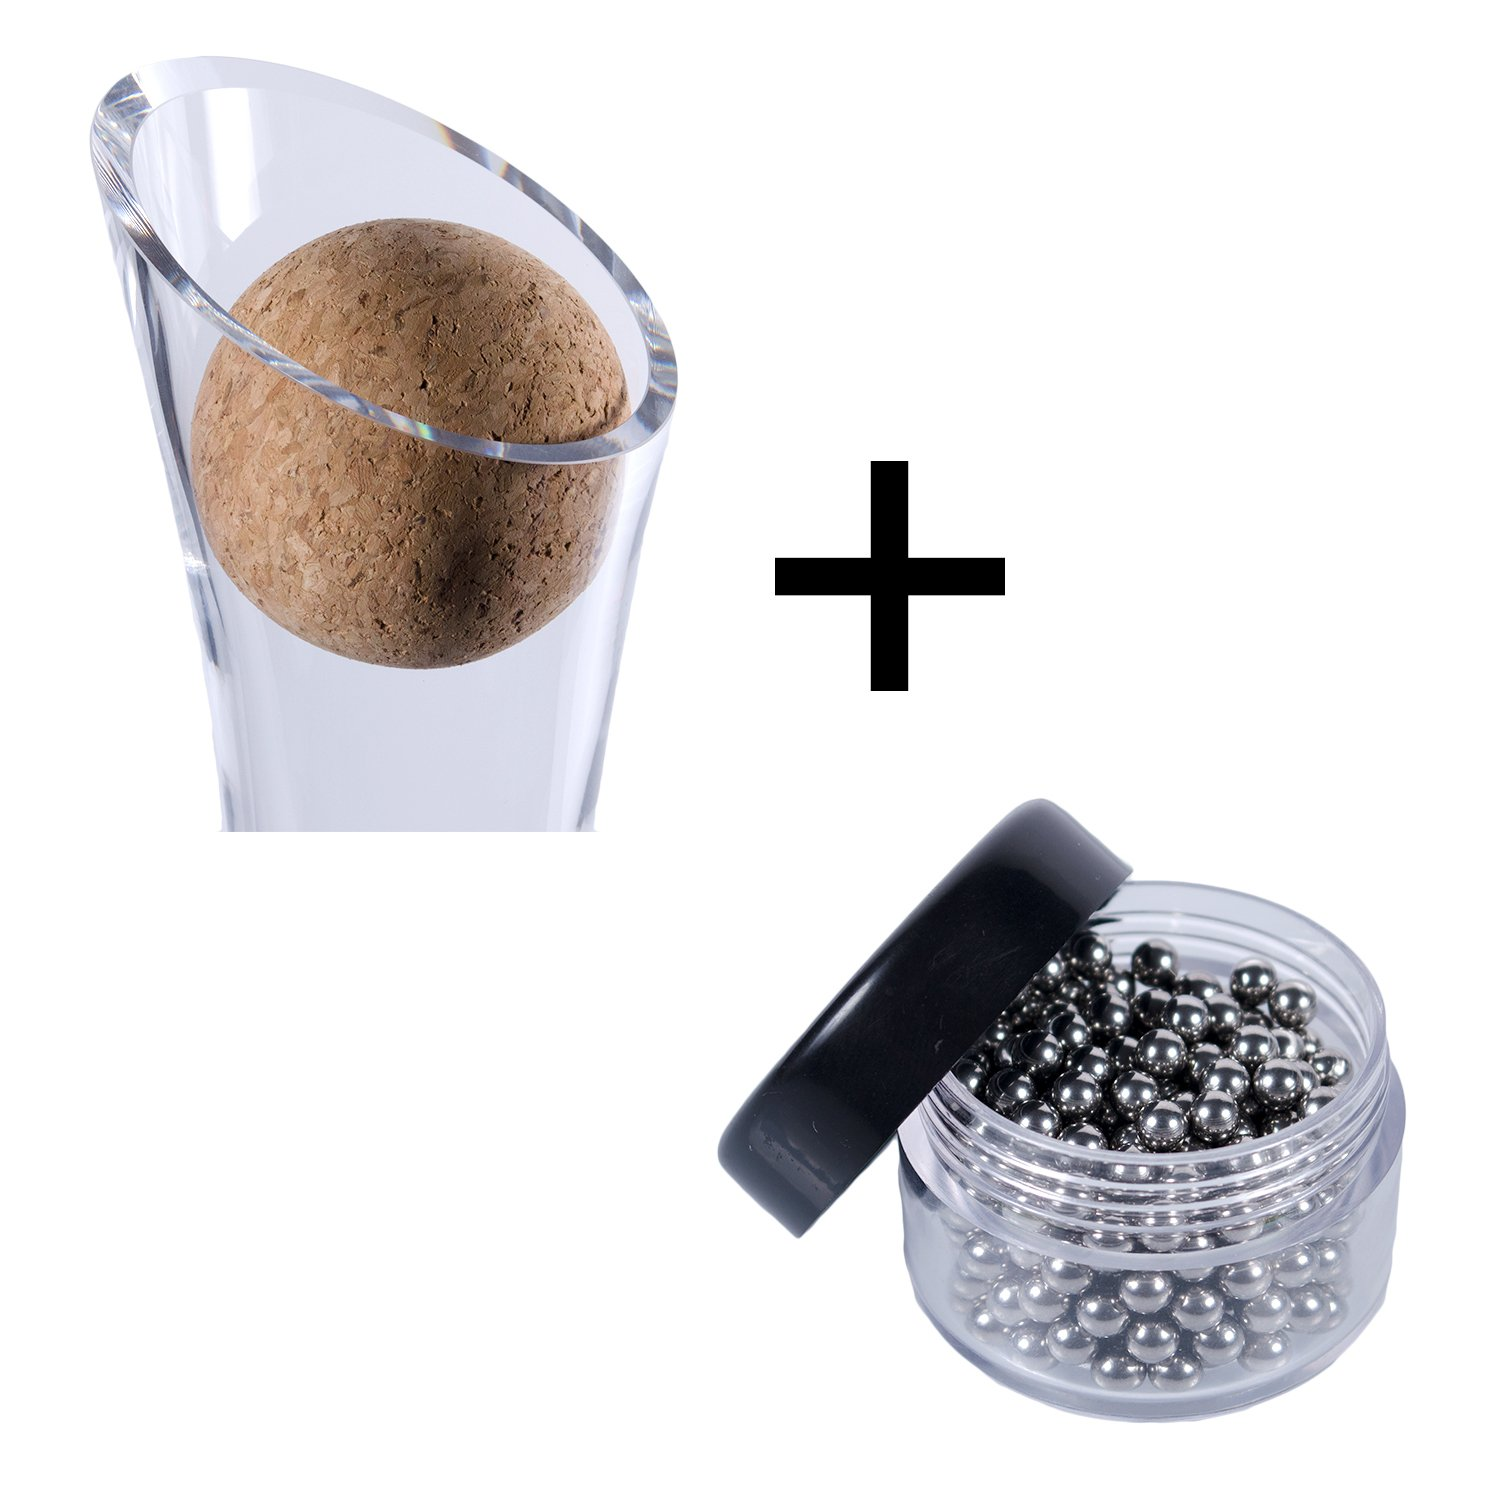 Wine Decanter Cork Stopper & Stainless Steel Cleaning Beads Accessories